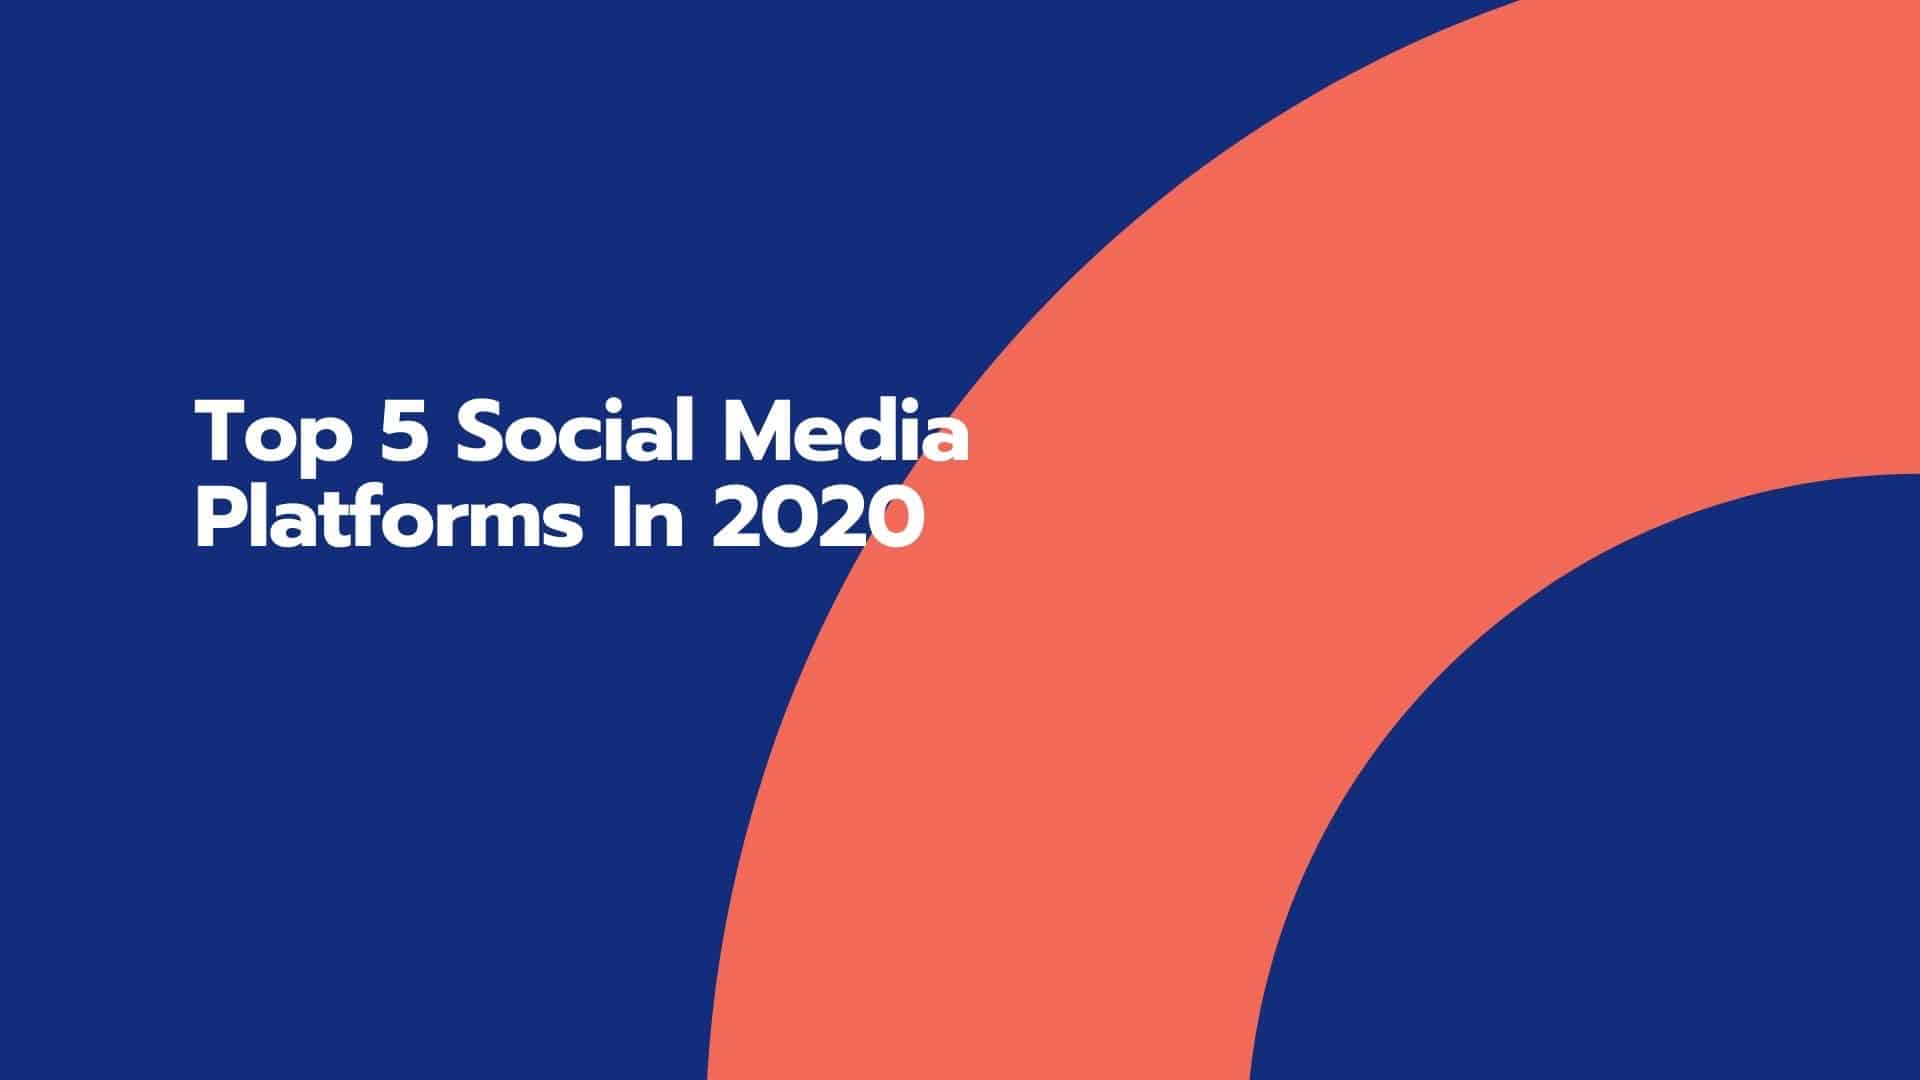 Top 5 Social Media Platforms in 2020